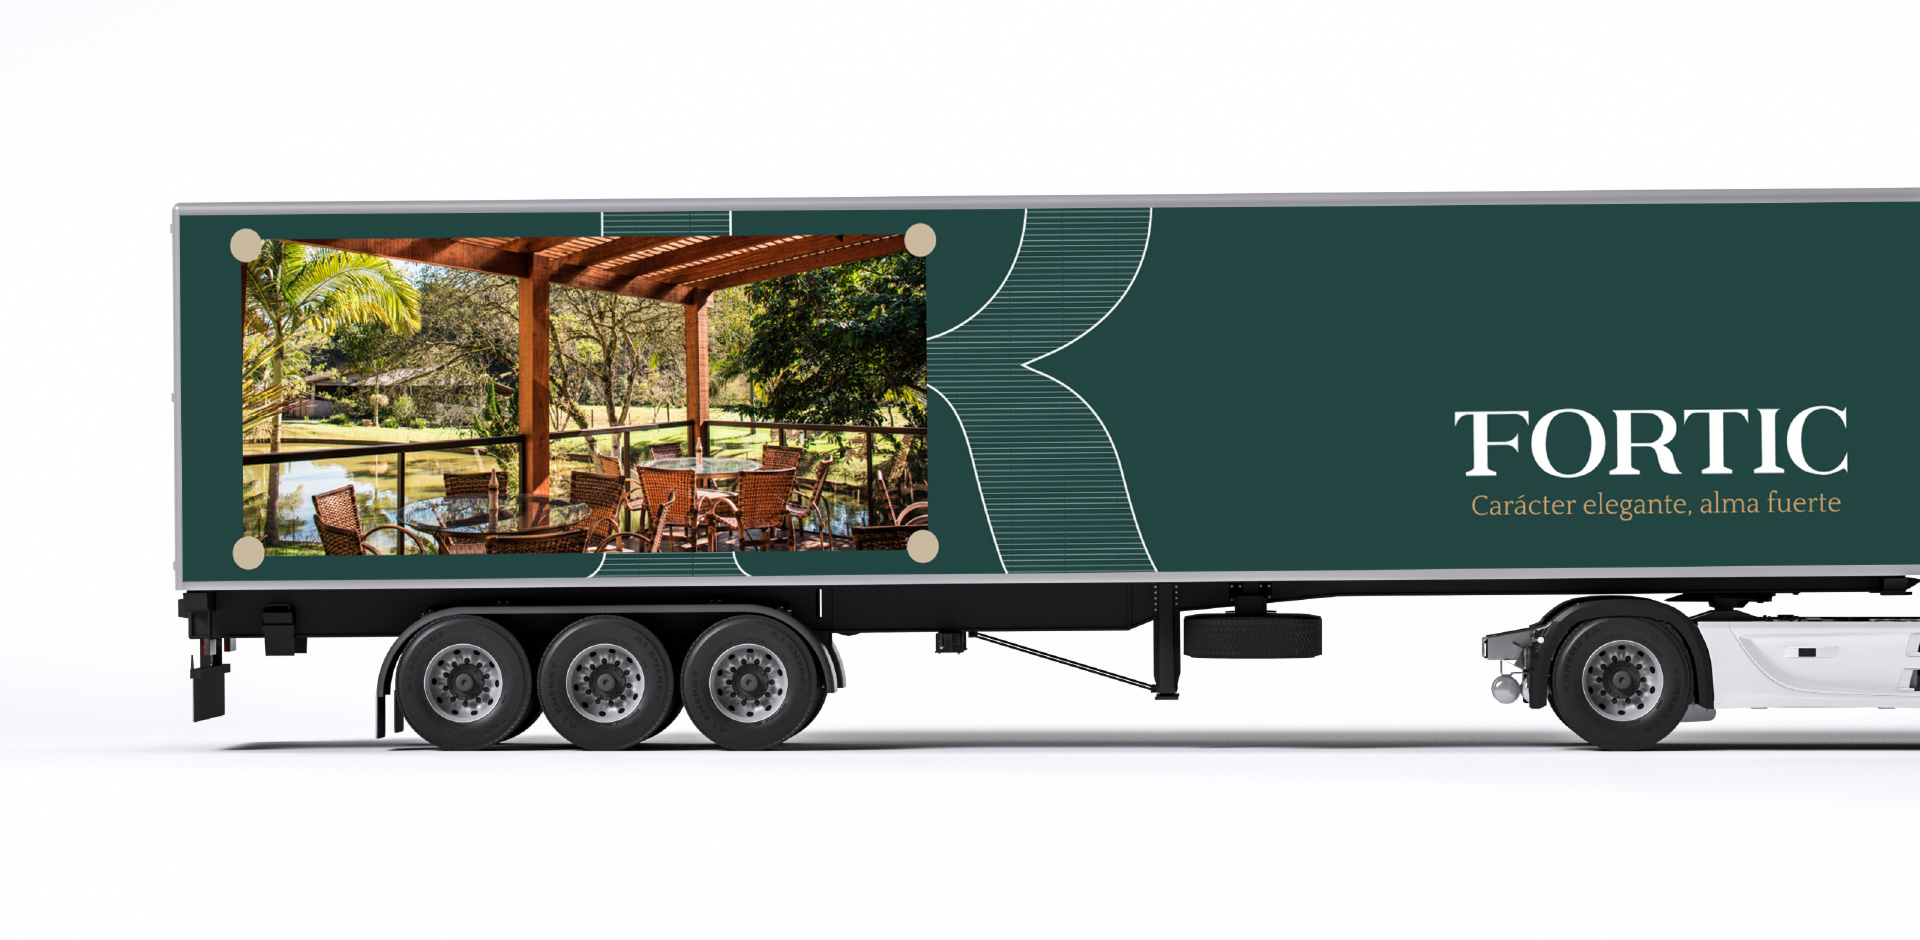 Camion lateral Fortic